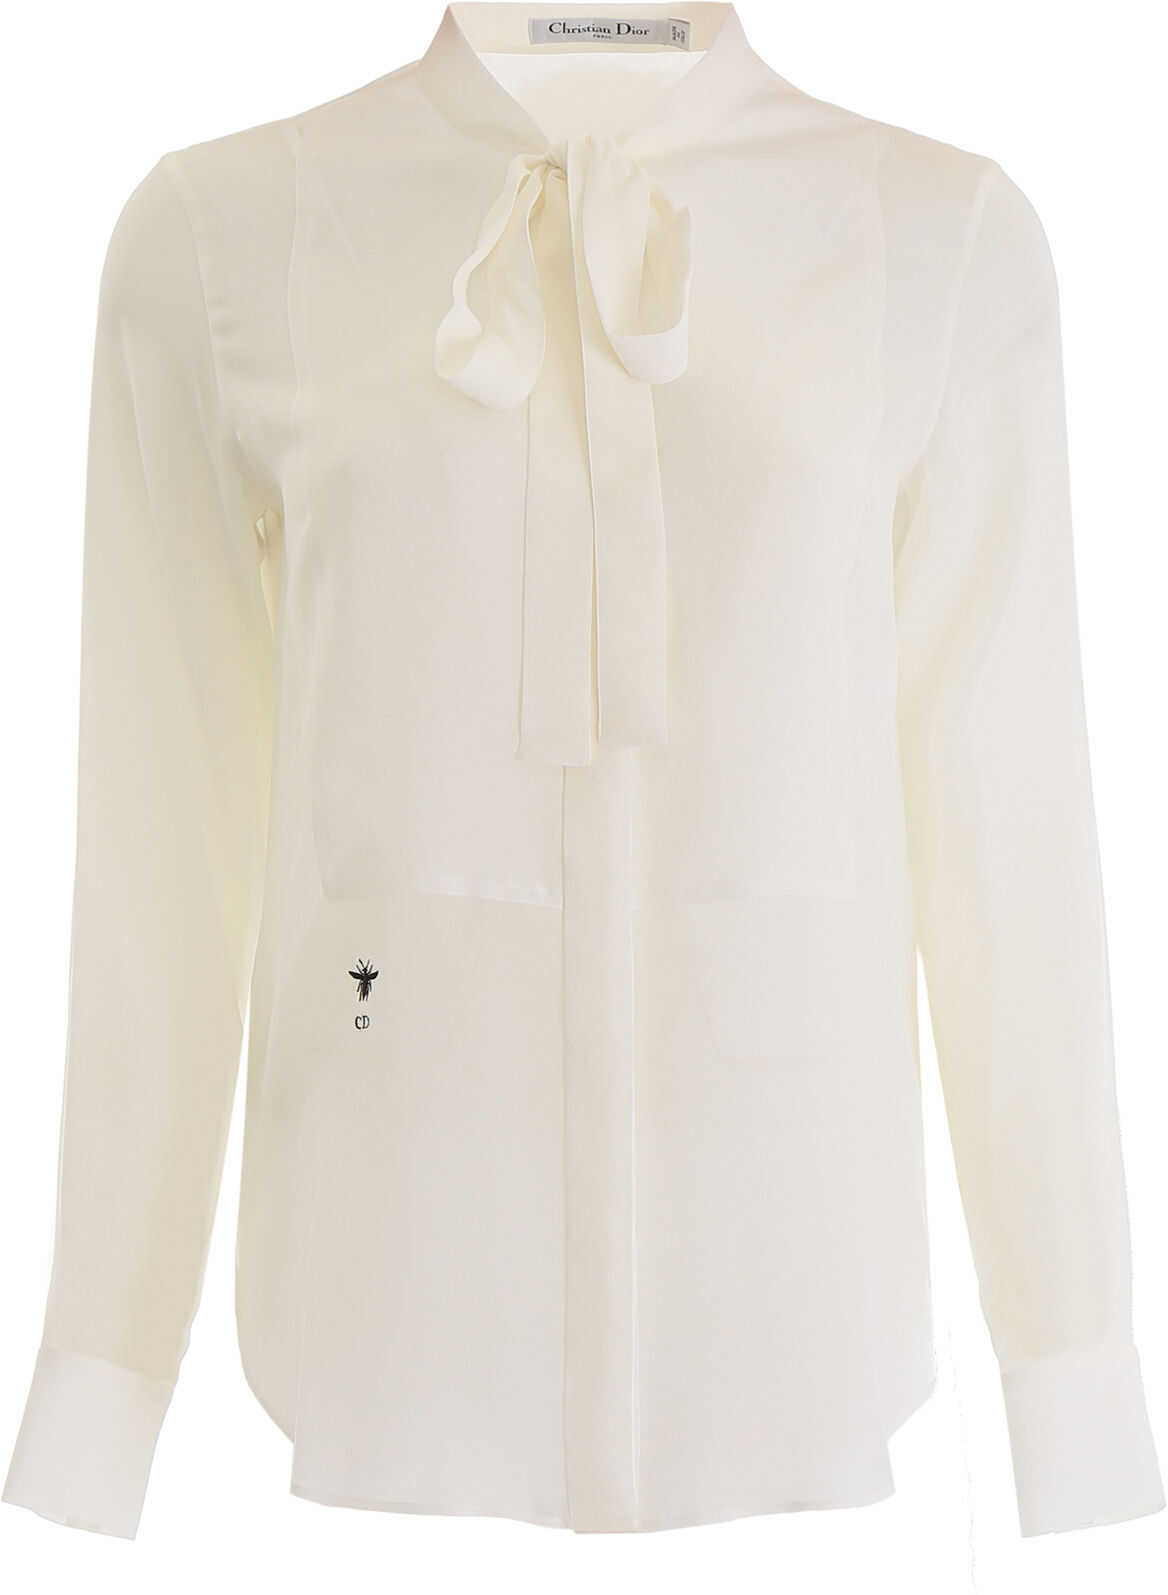 Dior Shirt With Bow ECRU